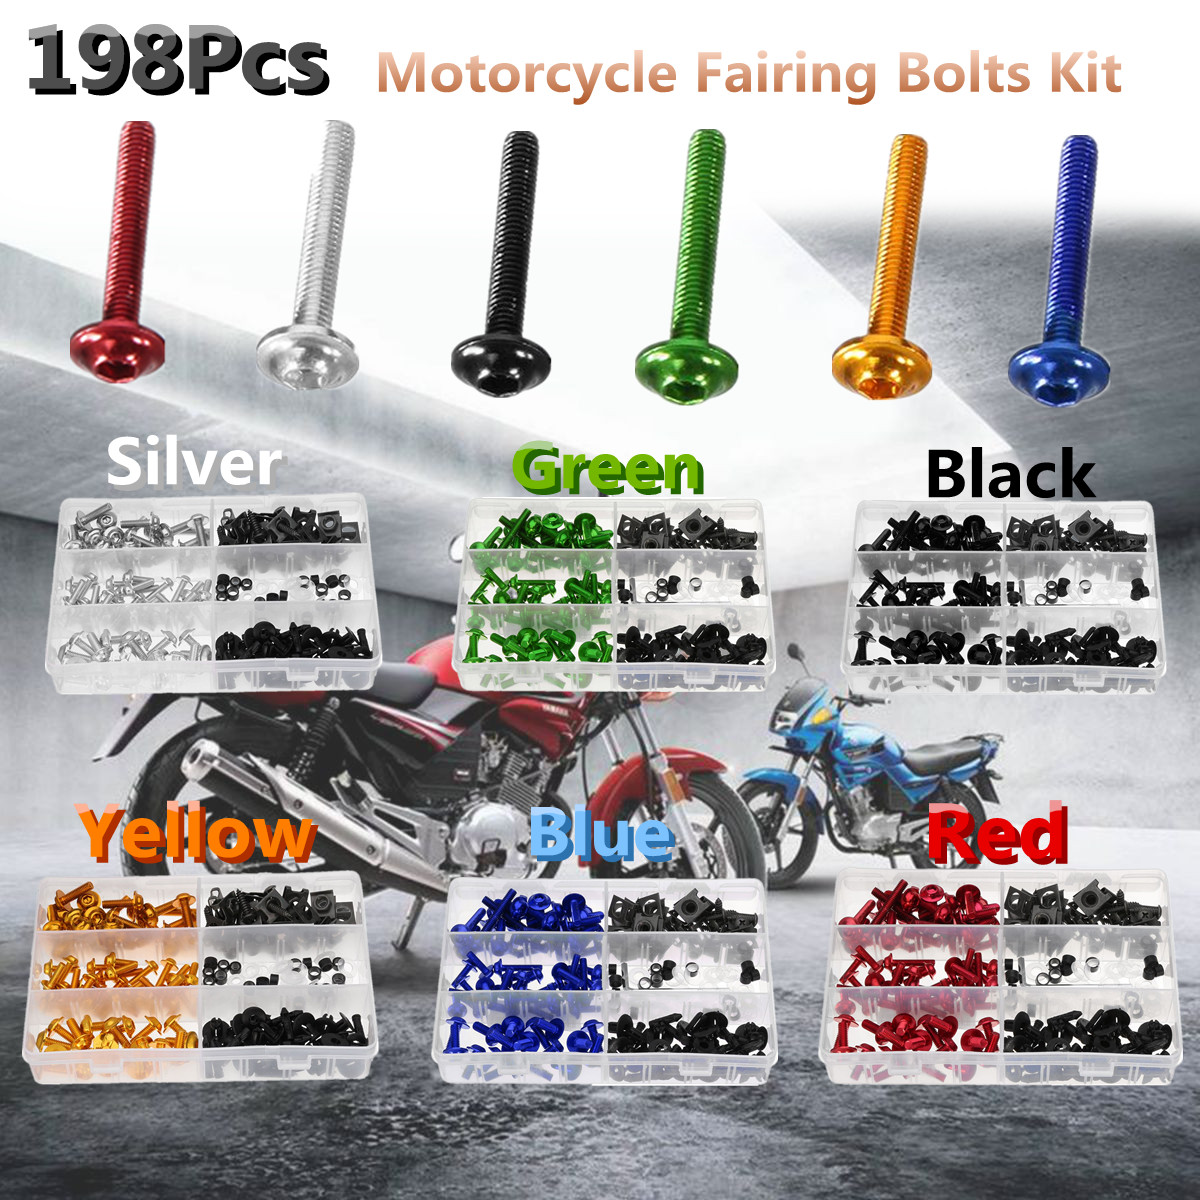 and Hardware Fasteners Black Complete Motorcycle Fairing Bolt Kit For Yamaha YZF-R1 2004-2006 Body Screws